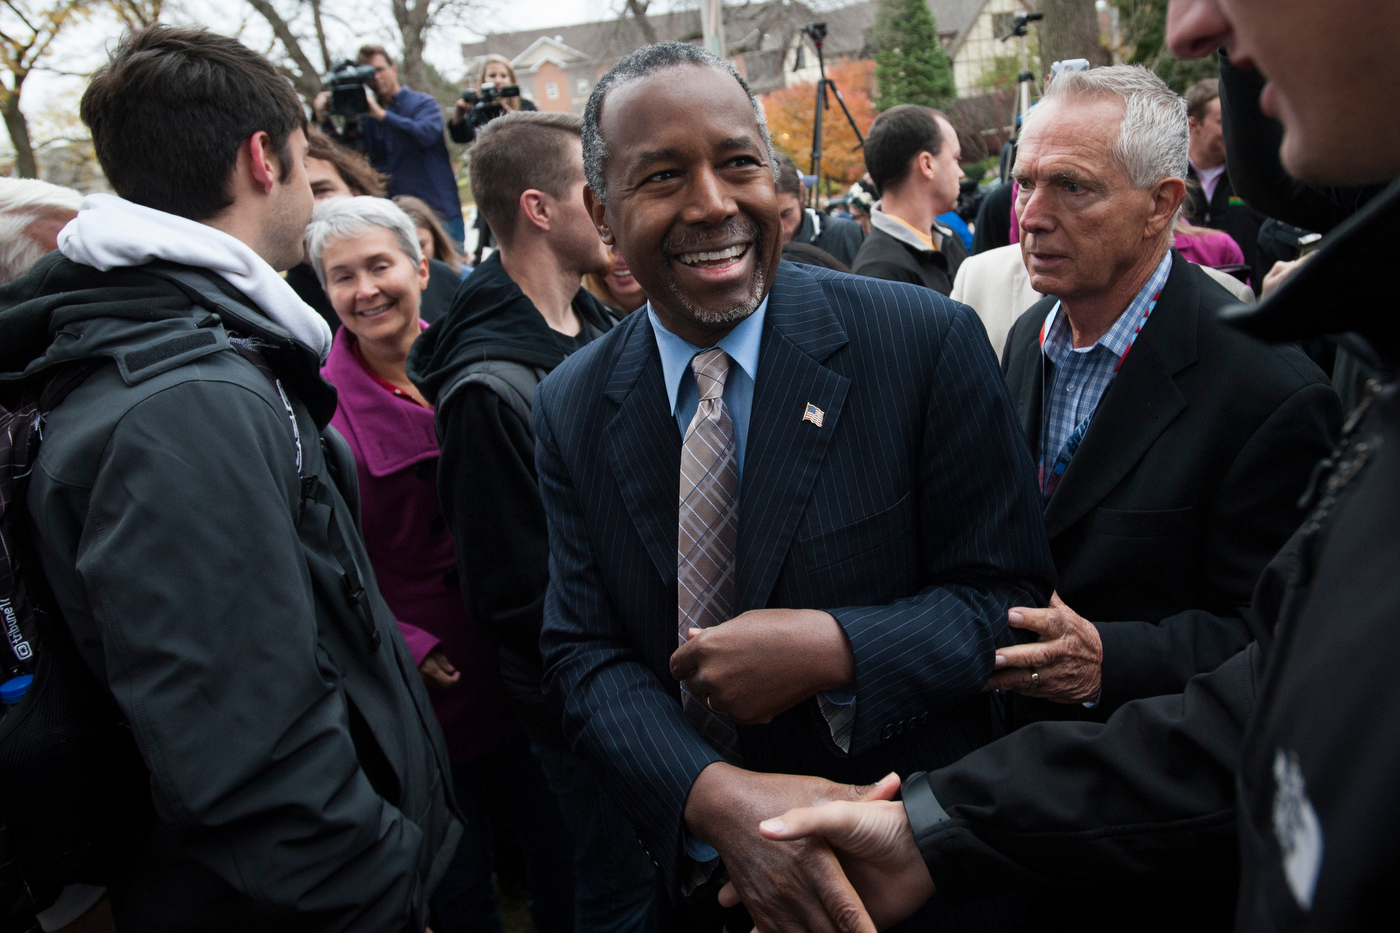 Republican presidential candidate Dr. Ben Carson greets supporters after a speech at the Alpha Gamma Roh fraternity at Iowa State University in Ames, Iowa.